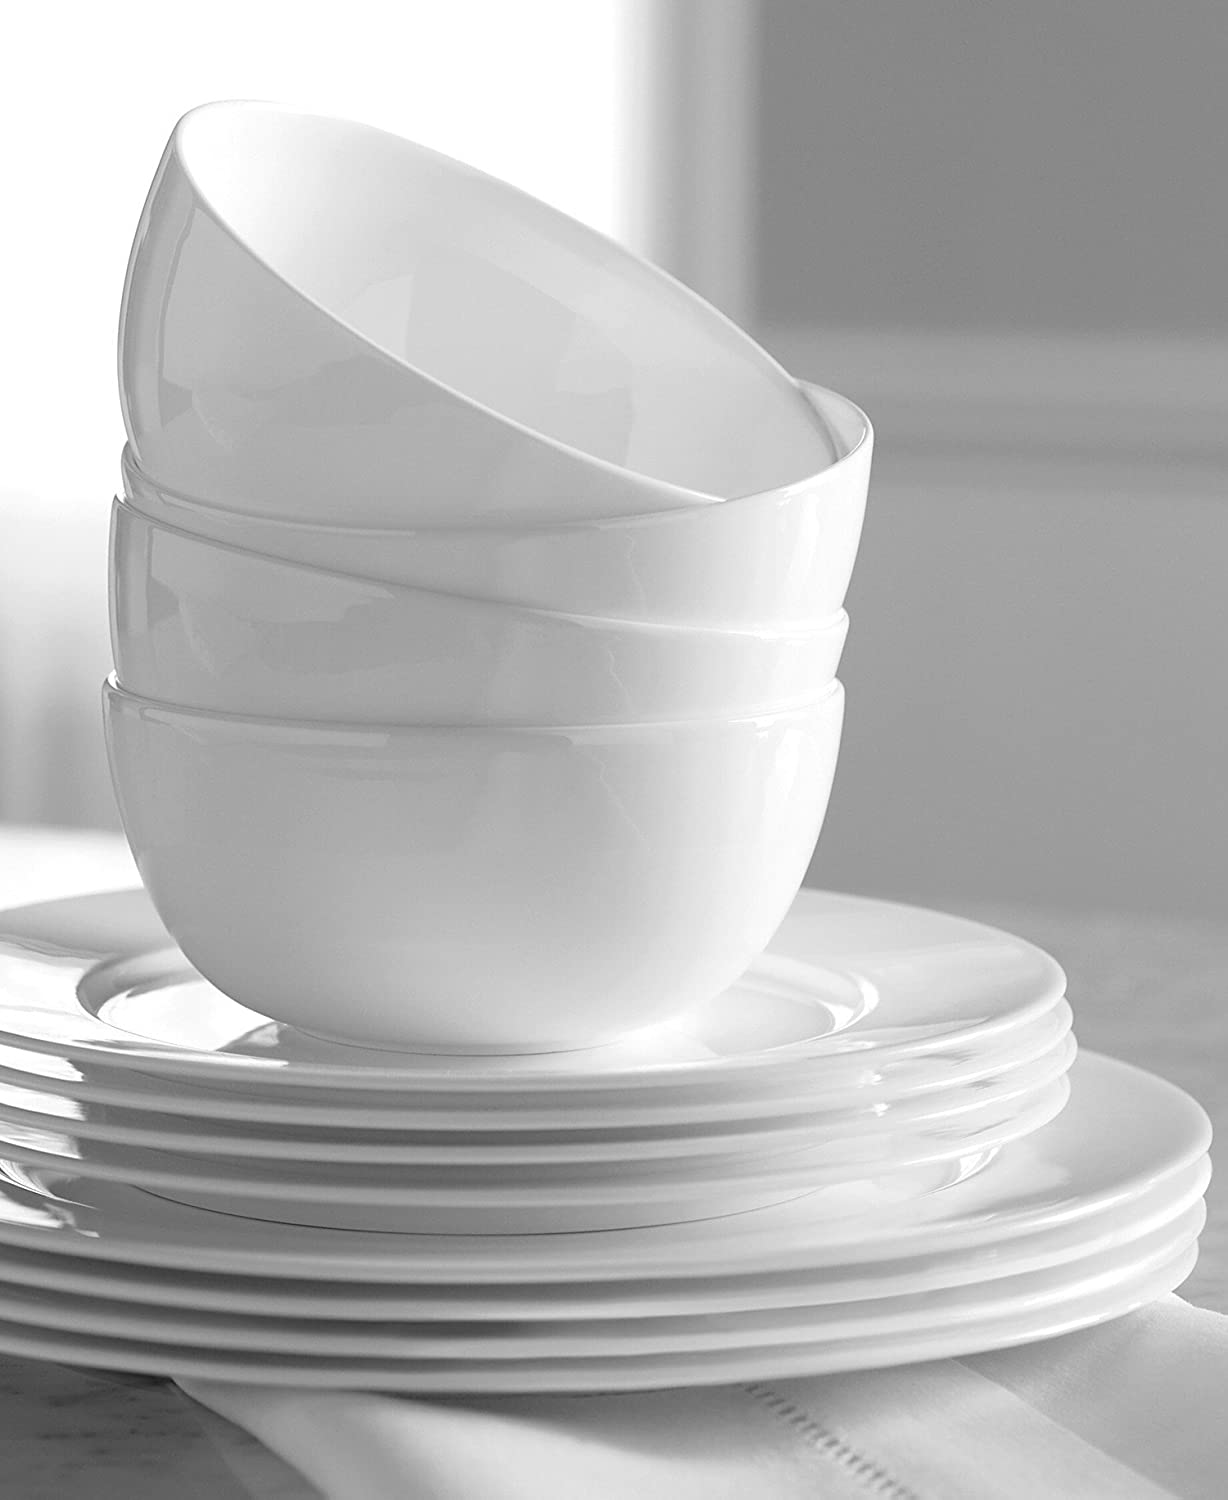 Amazon.com | Hotel Collection Dinnerware Bone China 12 Piece Set - White Other Products Dinnerware Sets & Amazon.com | Hotel Collection Dinnerware Bone China 12 Piece Set ...